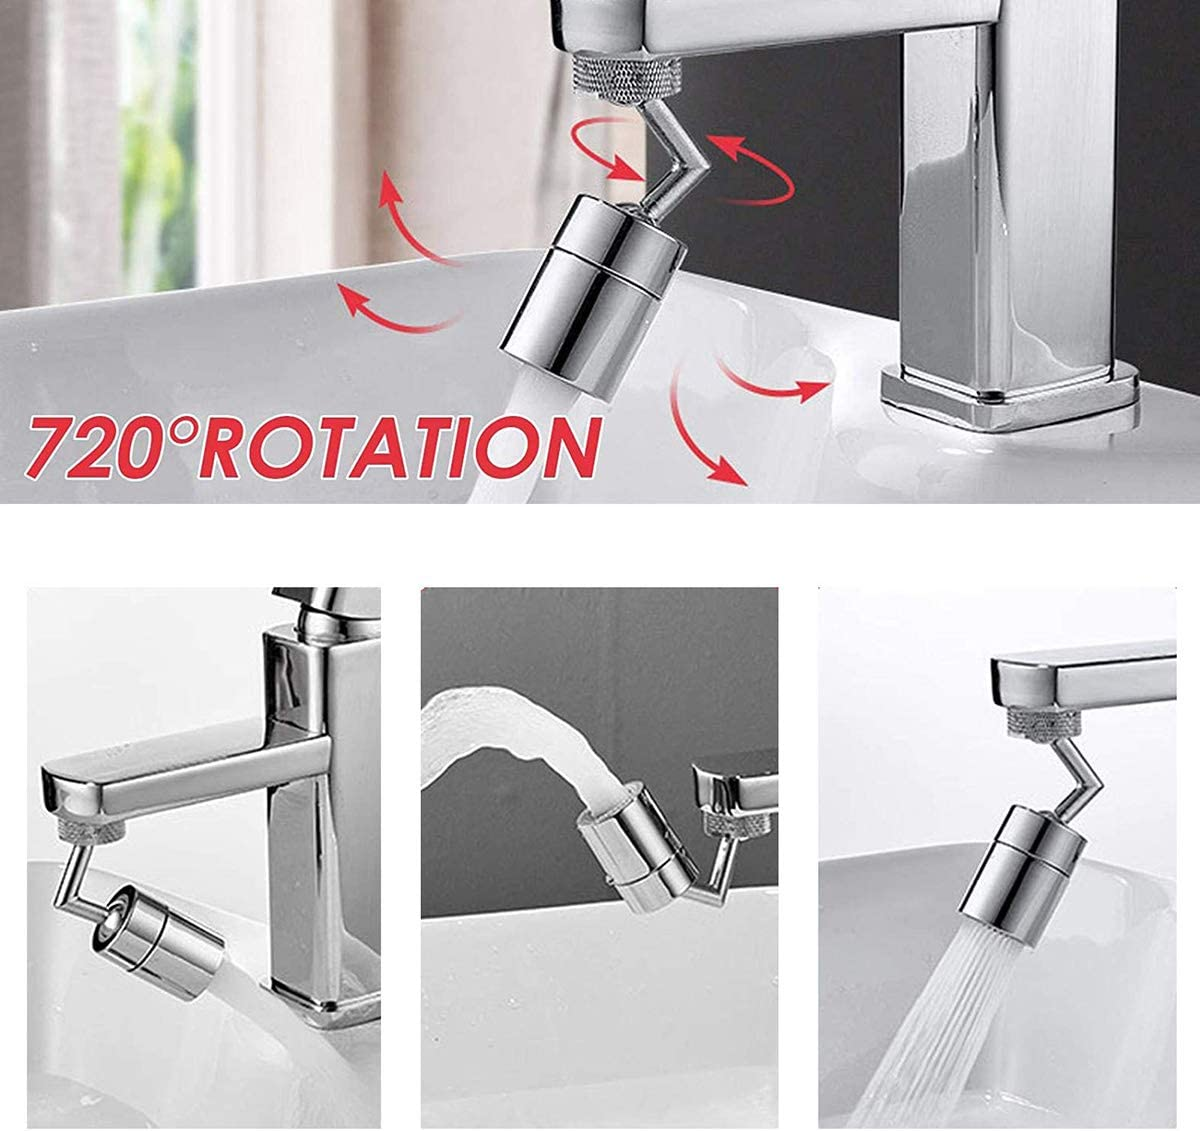 Silver Wondery Jute Hessian 720/° Universal Rotatable Faucet Sprayer,Anti-Splash Filter Faucet Head with 4-Layer Net Filter for Kitchen,Leakproof Design Oxygen-Enriched Foam